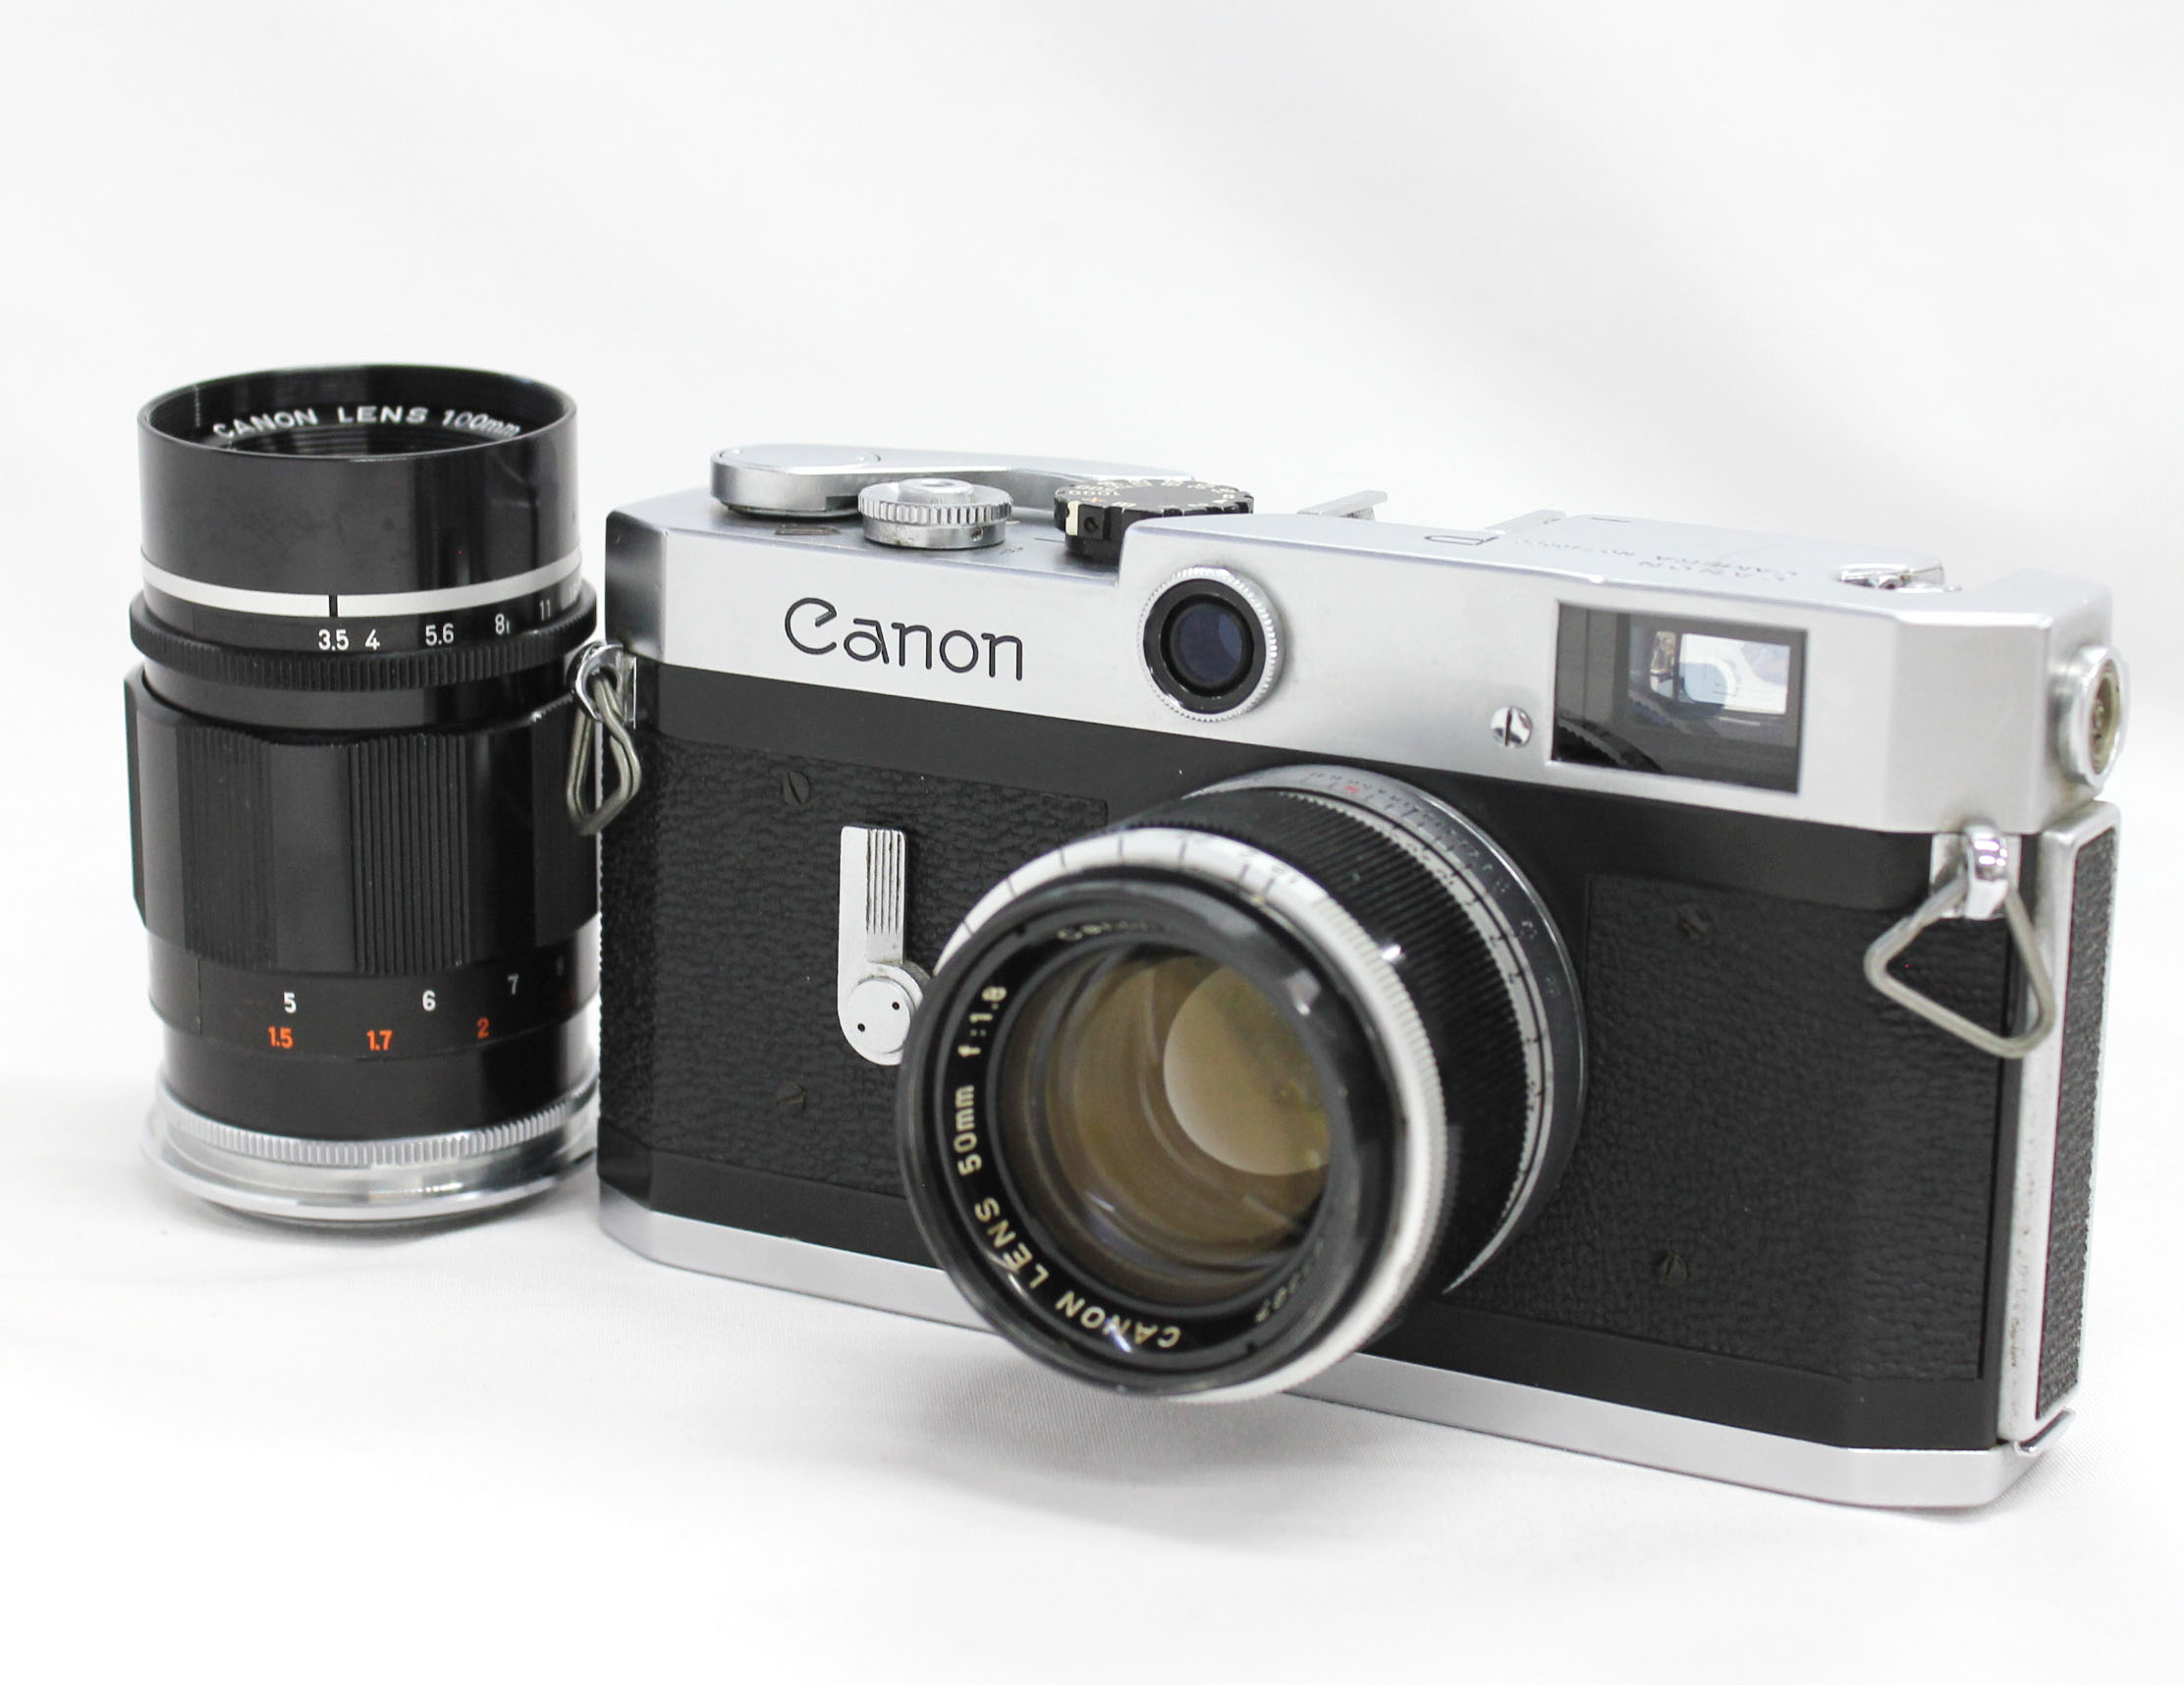 Japan Used Camera Shop | Canon P Rangefinder 35mm Film Camera with Bonus Lens 50mm & 100mm from Japan